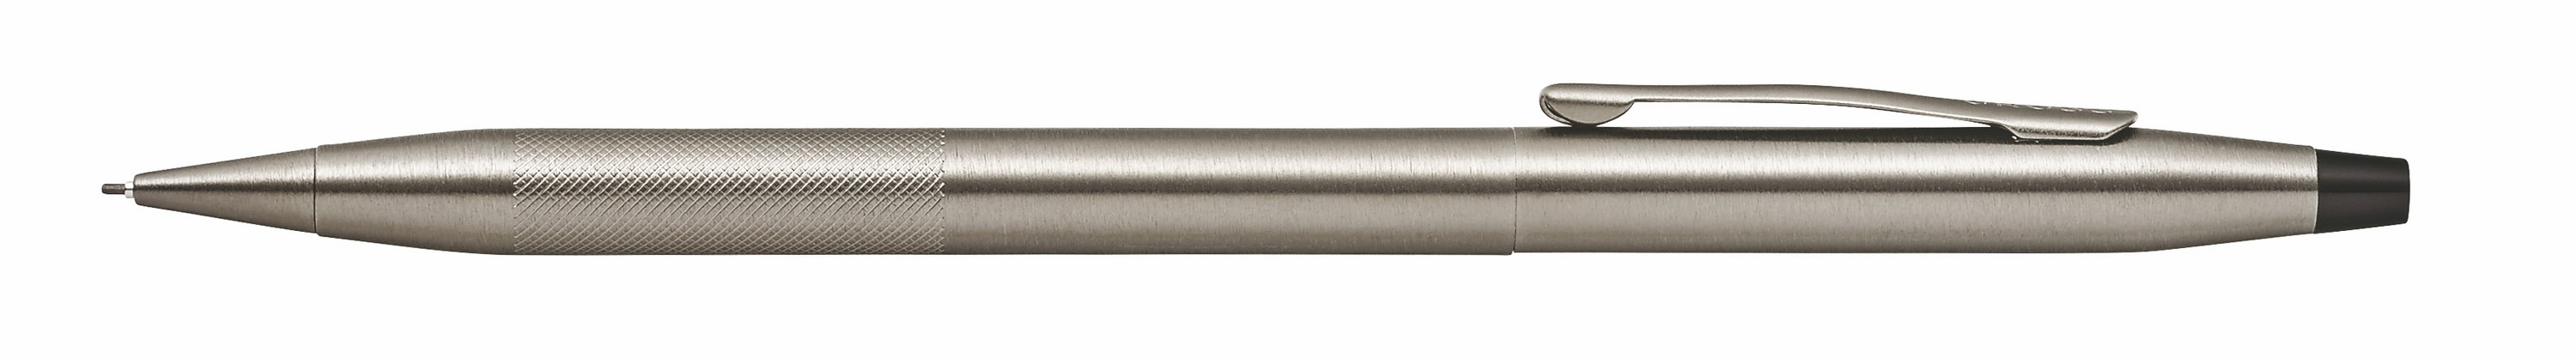 946442848-126 - Classic Century Titanium Gray PVD 0.7mm Pencil with Micro-knurl Detail - thumbnail